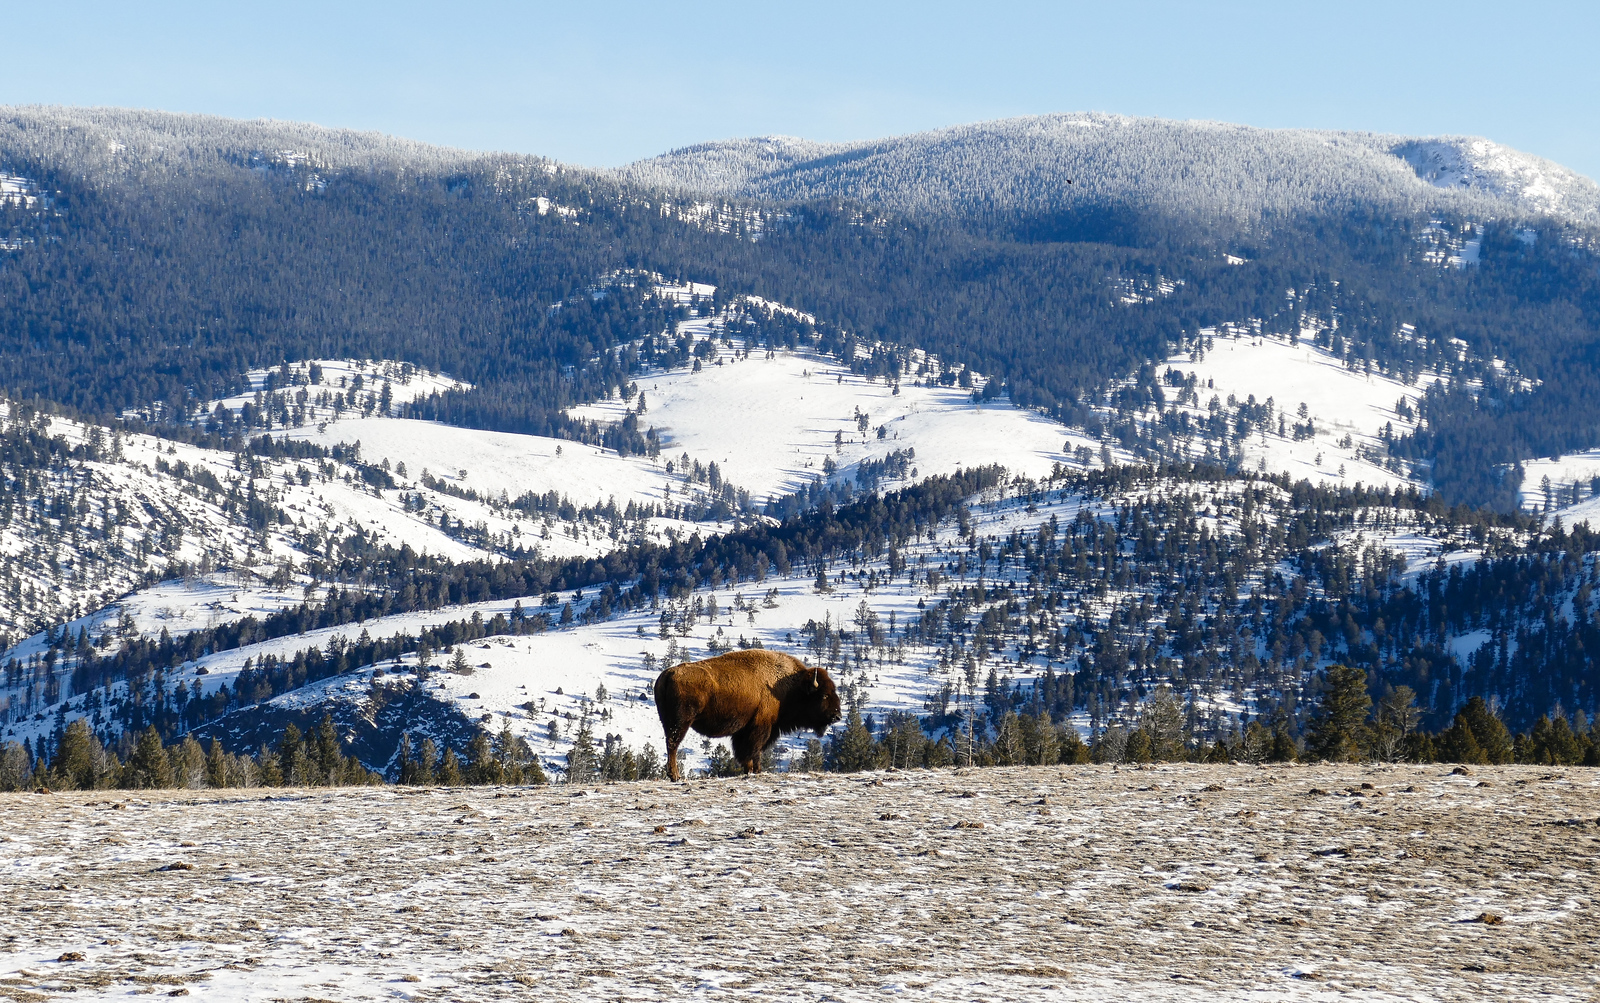 Photograph of a bison on a winter visit to Yellowstone National Park.